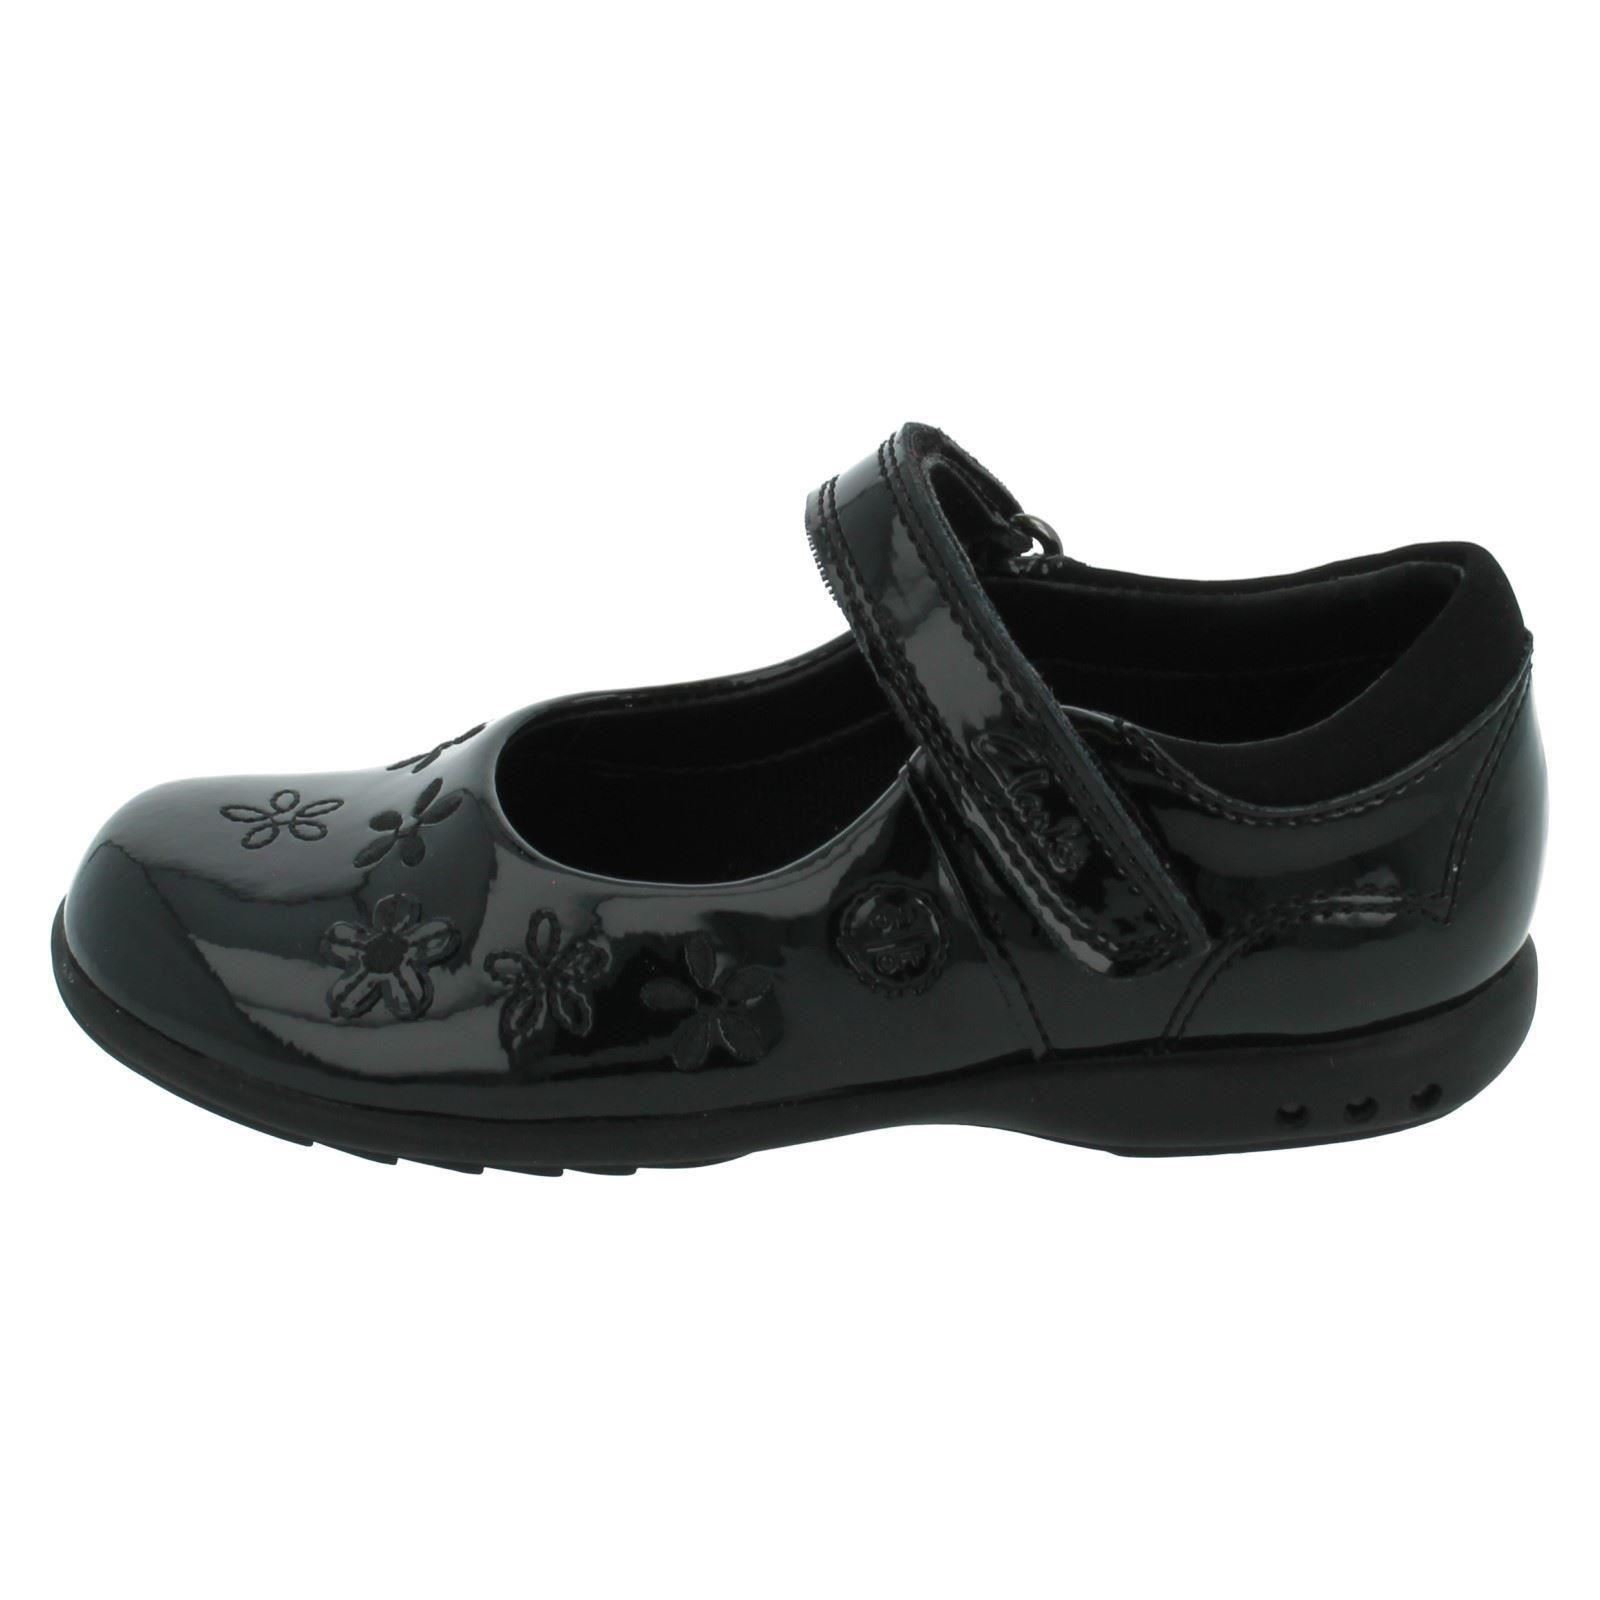 Girls Clarks Shoes The Style - Breenatoes